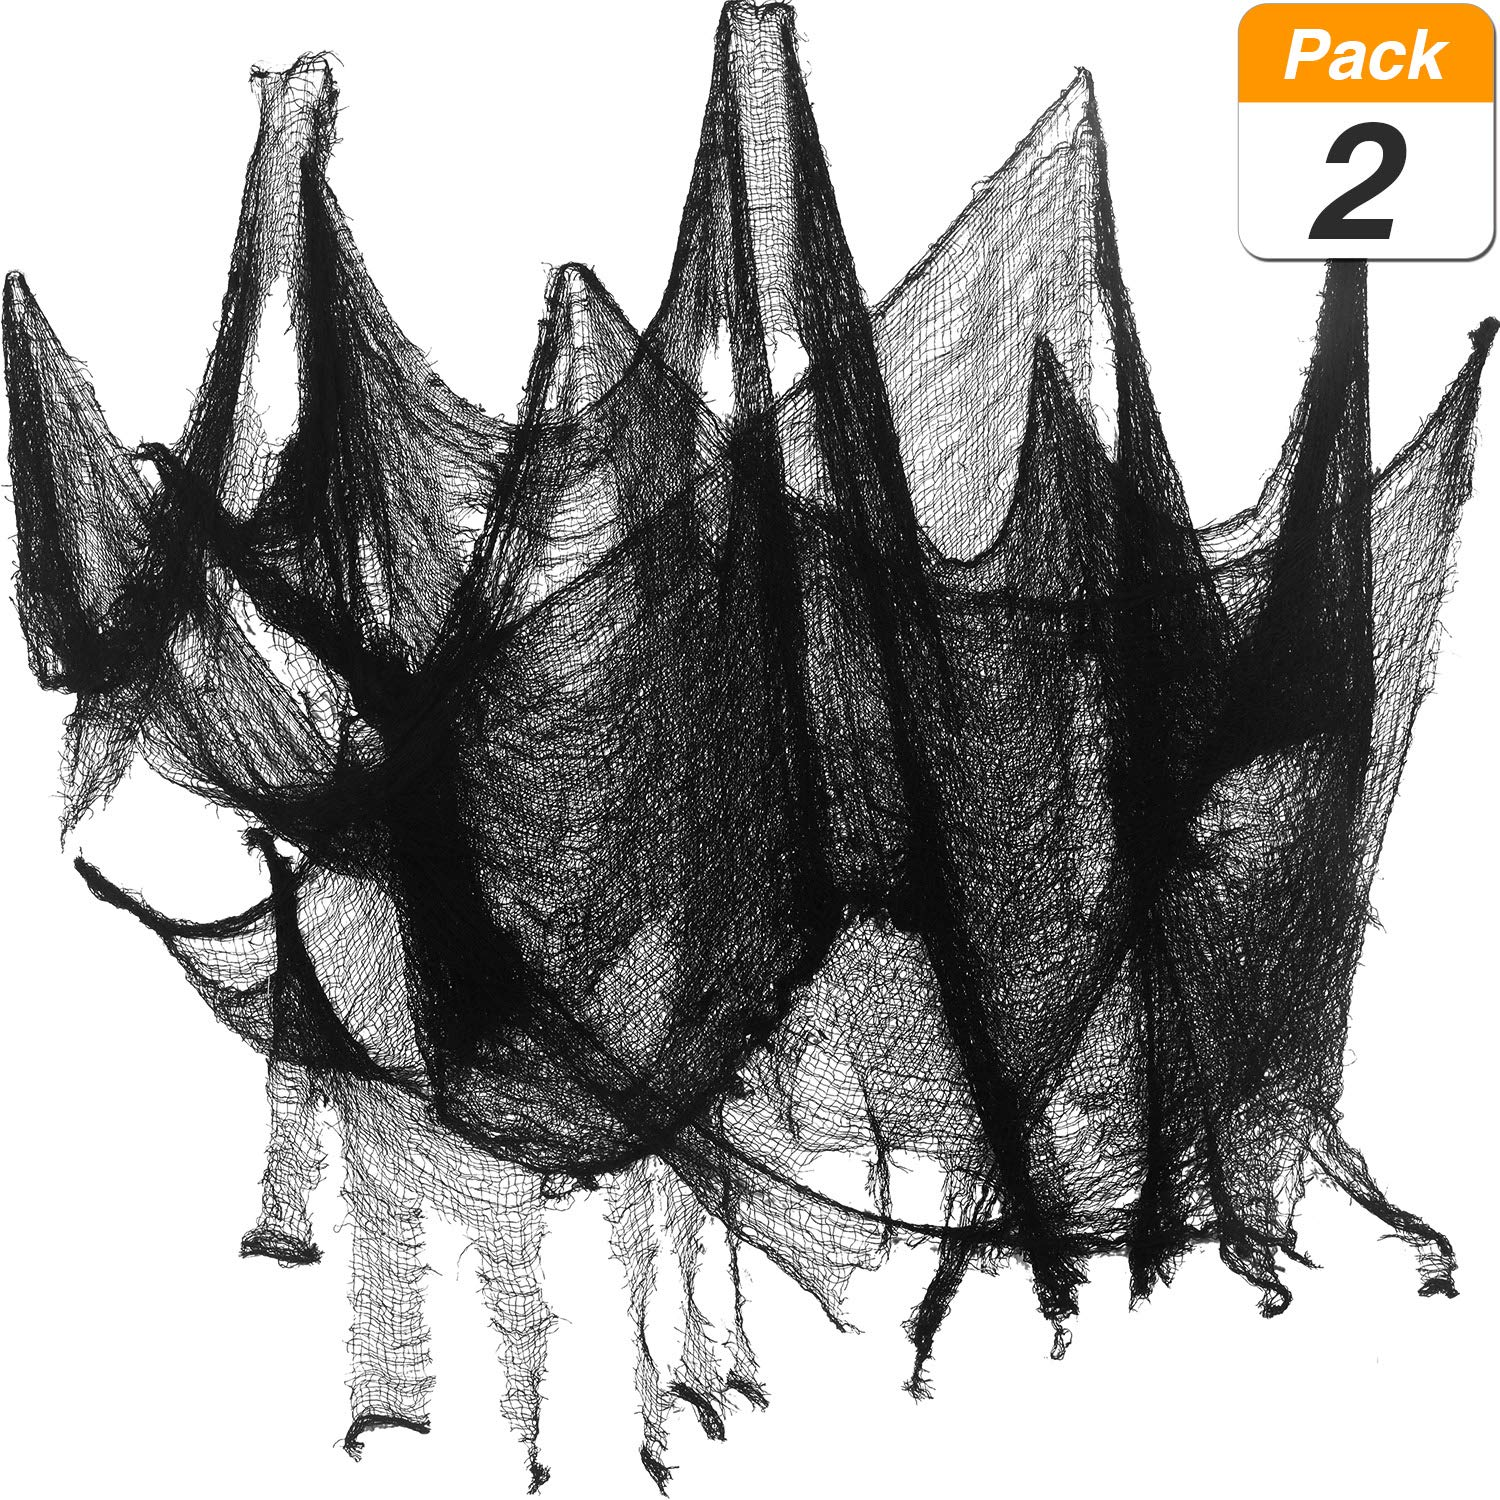 Jovitec 2 Pack Creepy Cloth Halloween Polyester Decorations Size Scary Spooky Cloth Halloween Party Supplies (8 Yards x 30 Inch, Black)